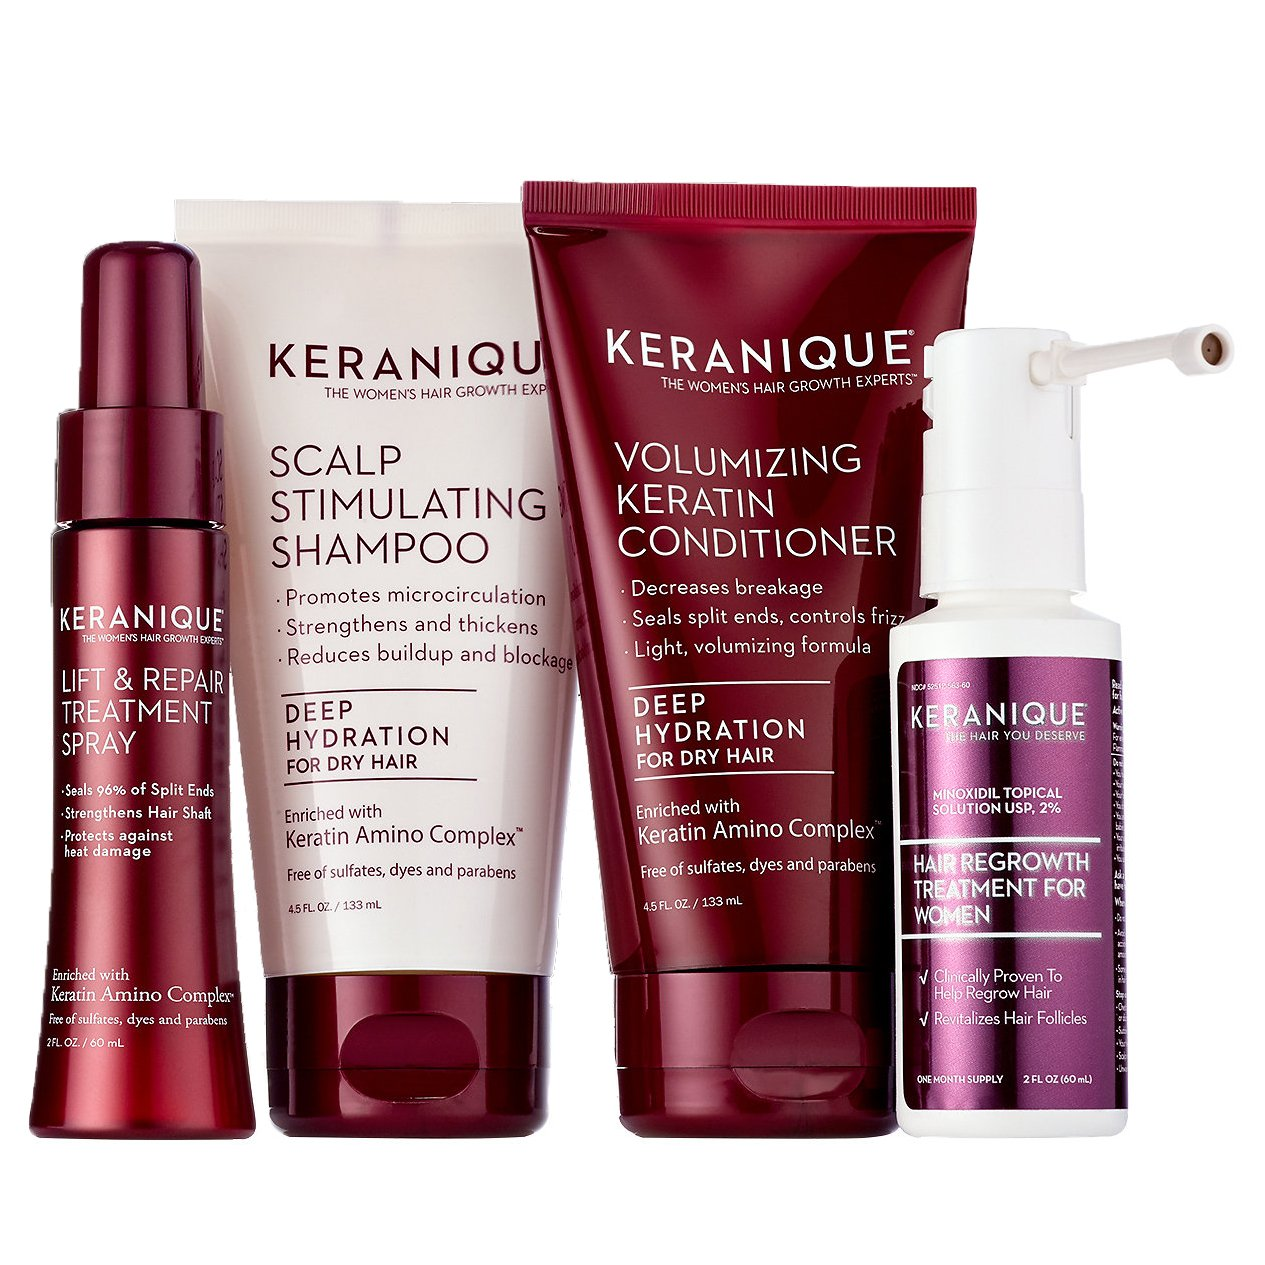 Keranique 30 Day Hair Regrowth System Deep Hydration(Scalp Stimulating Shampoo and Volumizing Keratin Conditioner 4.5 oz, Lift and Repair Treatment Spray 2.0 oz and Hair Regrowth Treatment 2.0 oz) by Keranique